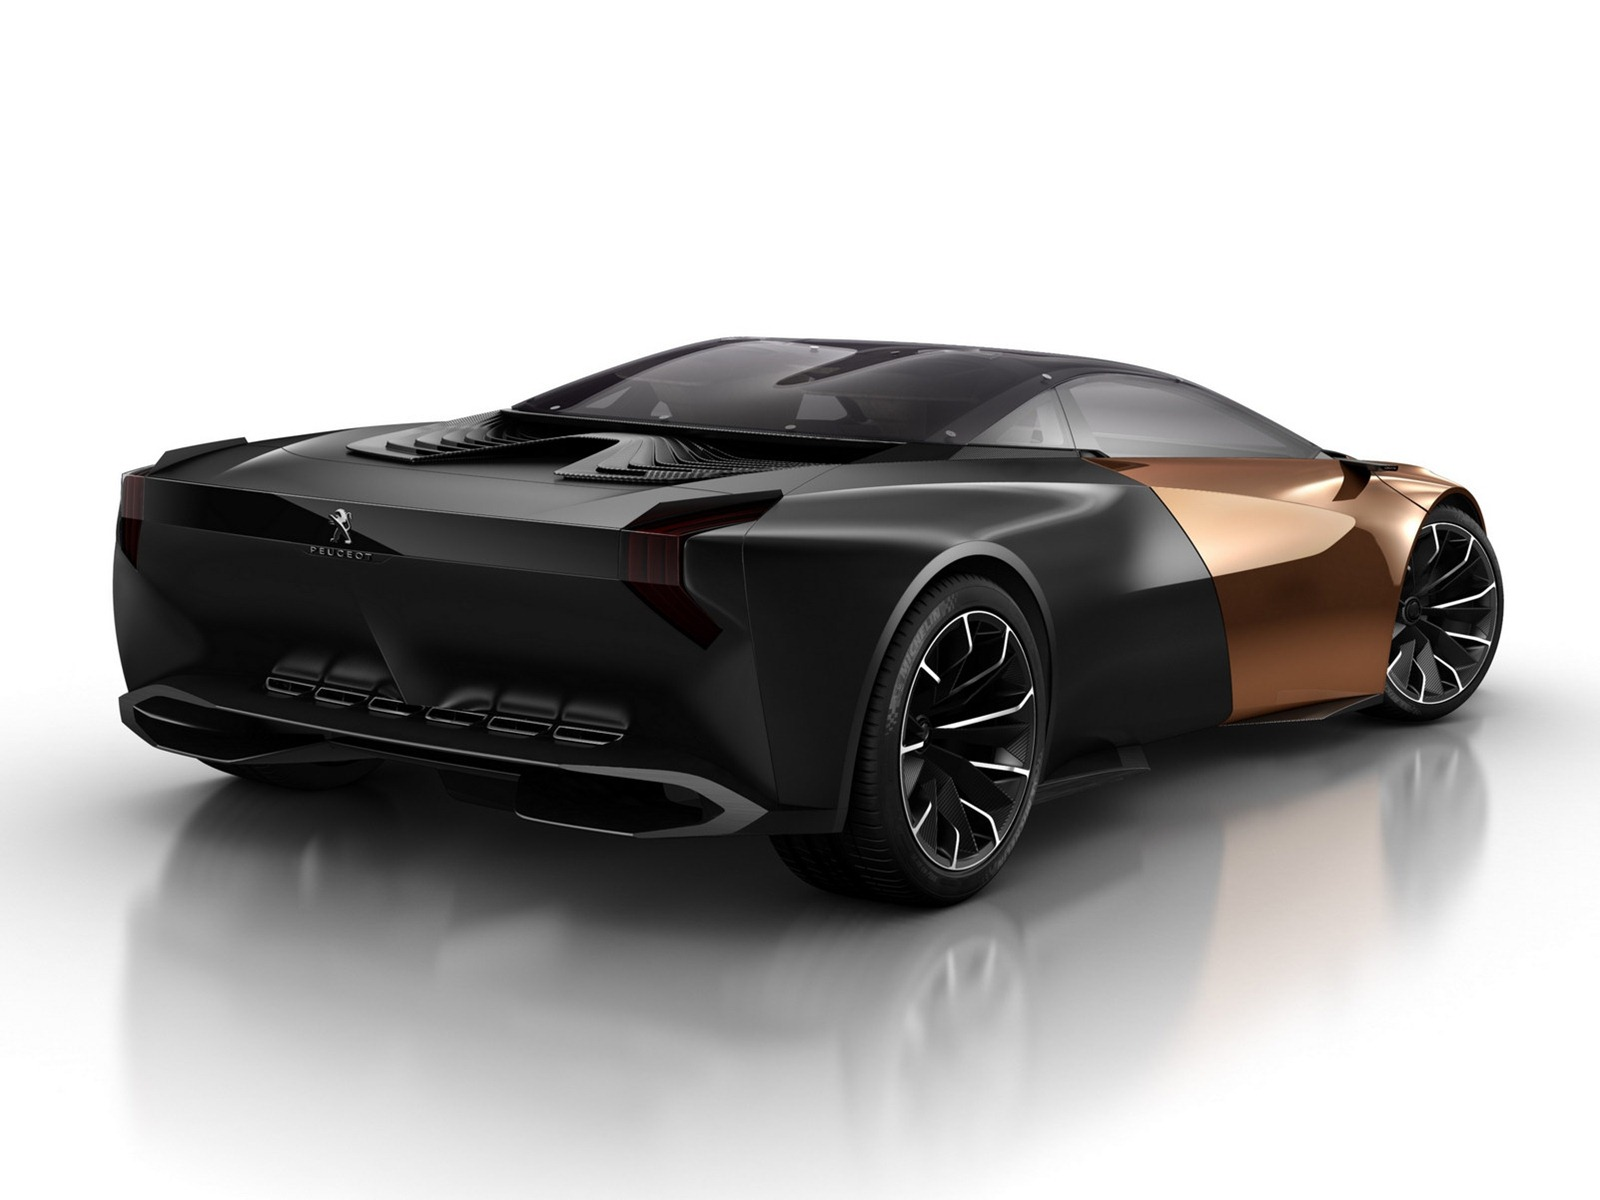 peugeot onyx concept photos leaked - autoevolution